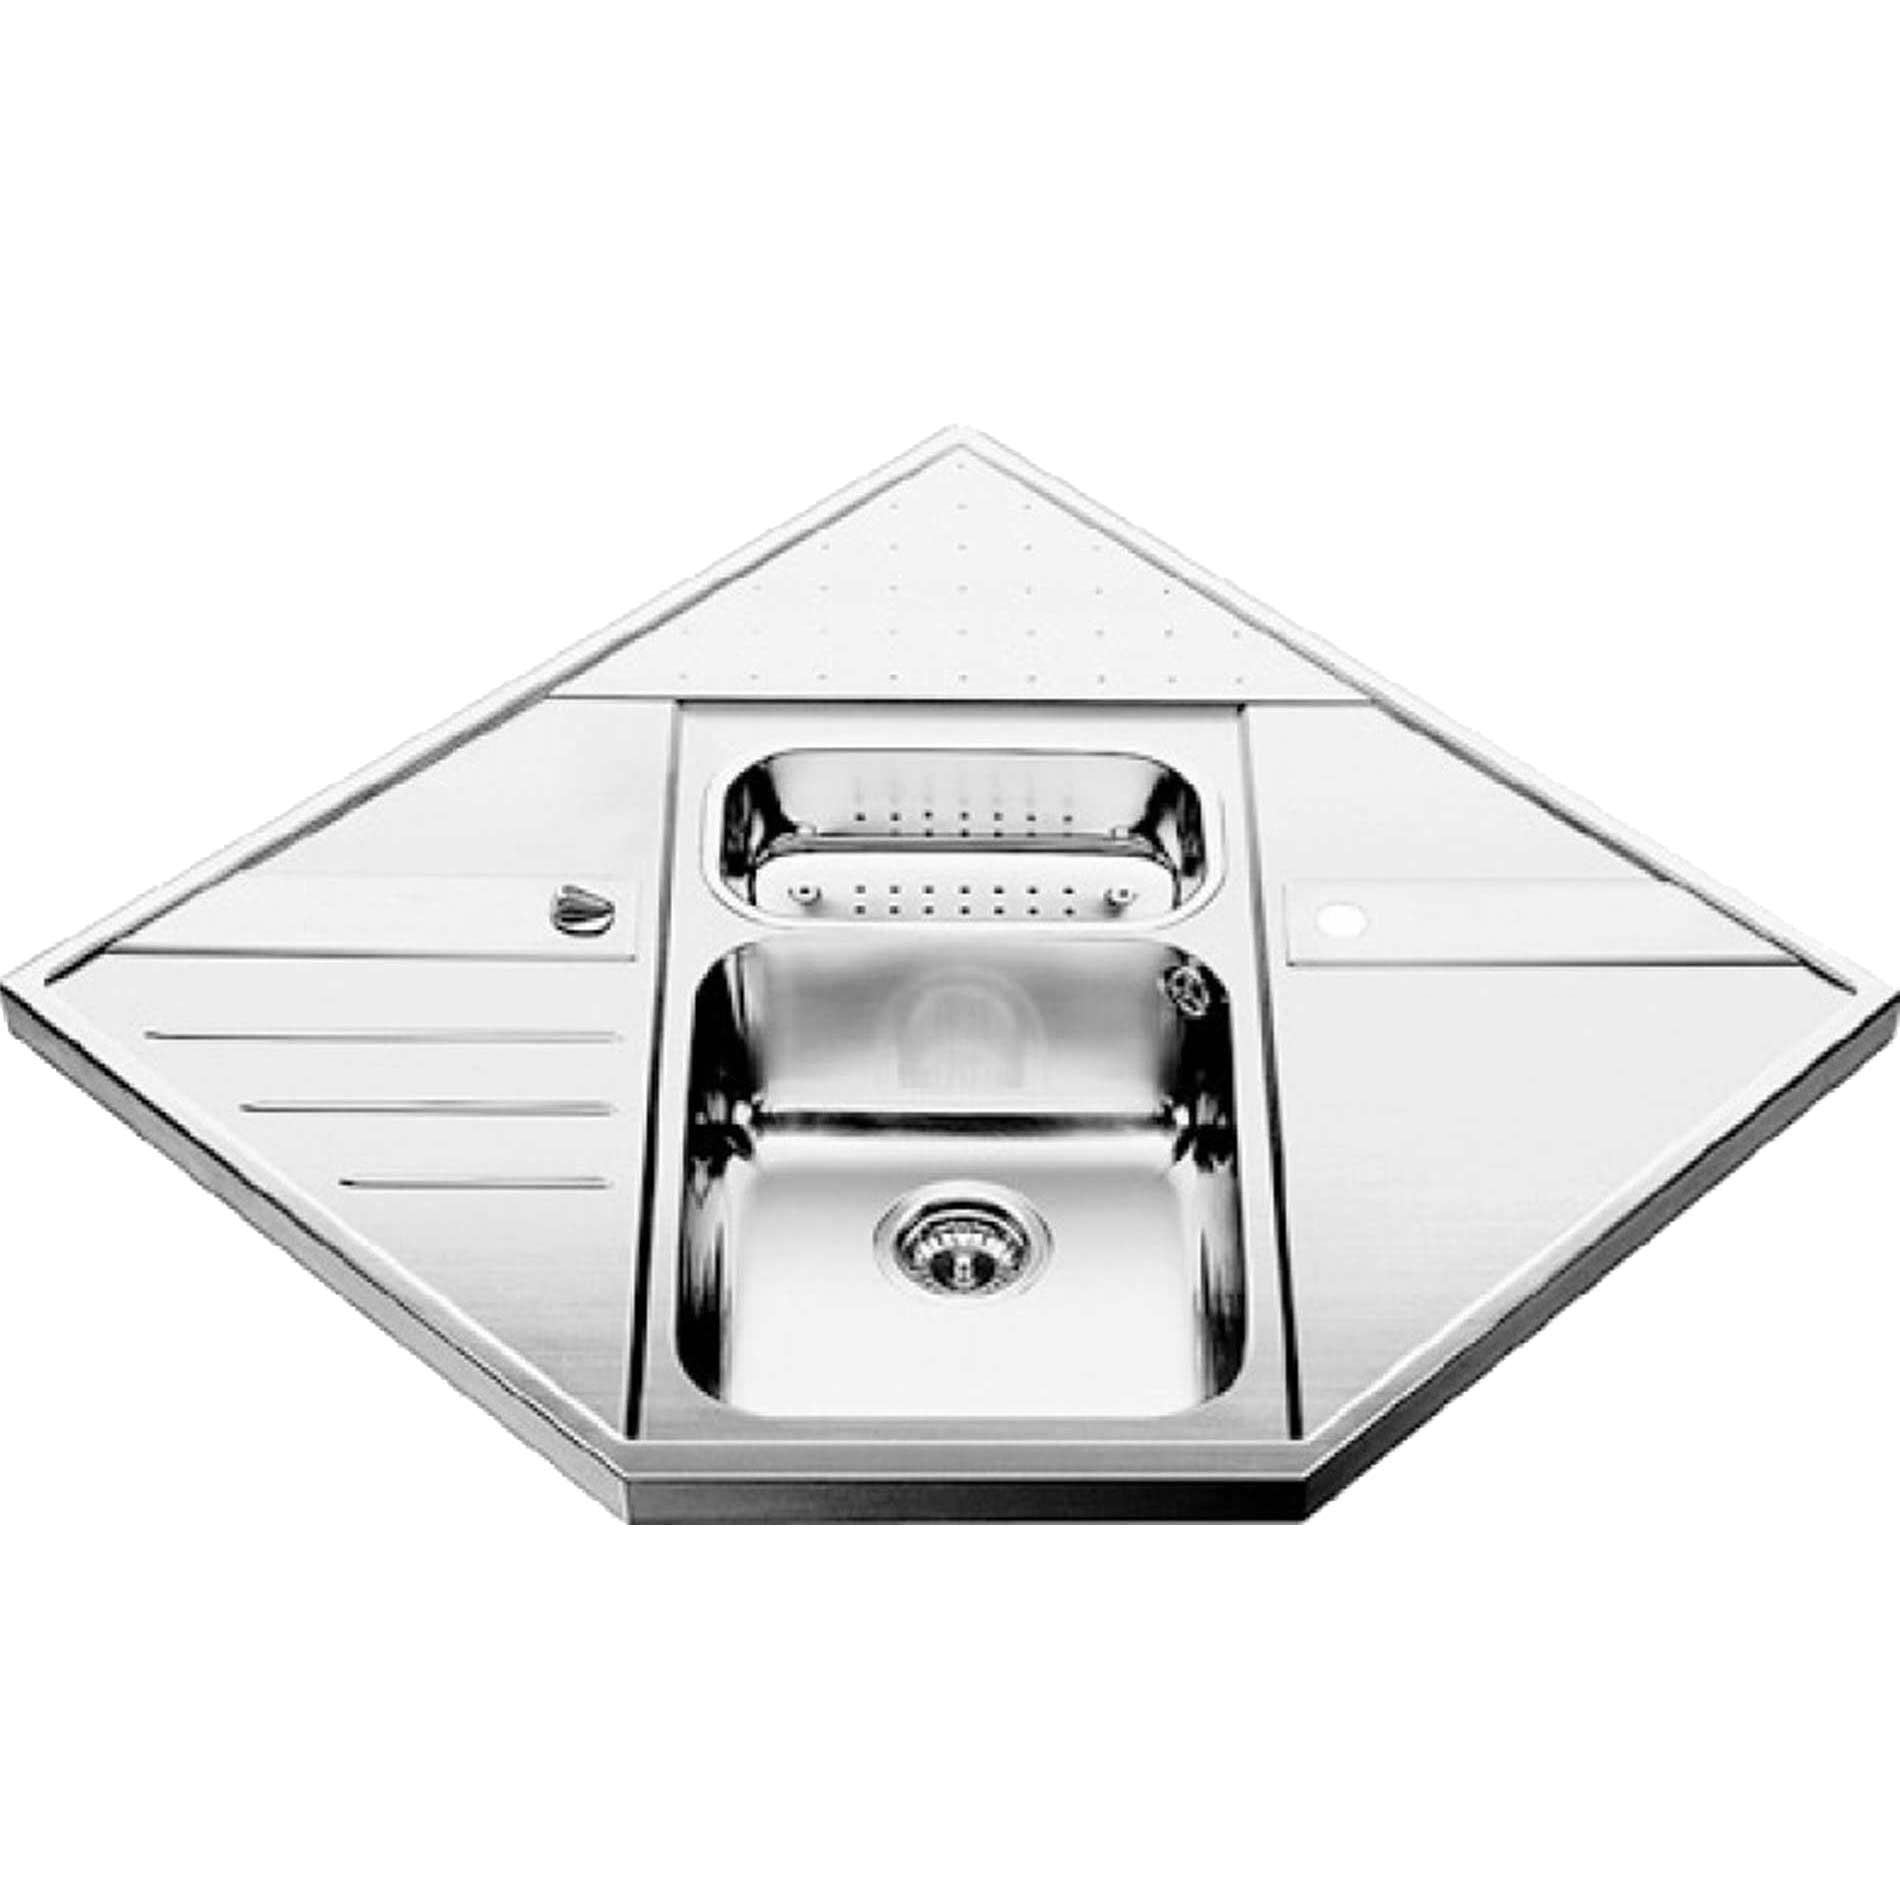 Blanco Axis 9e M Module Stainless Steel Sink Kitchen